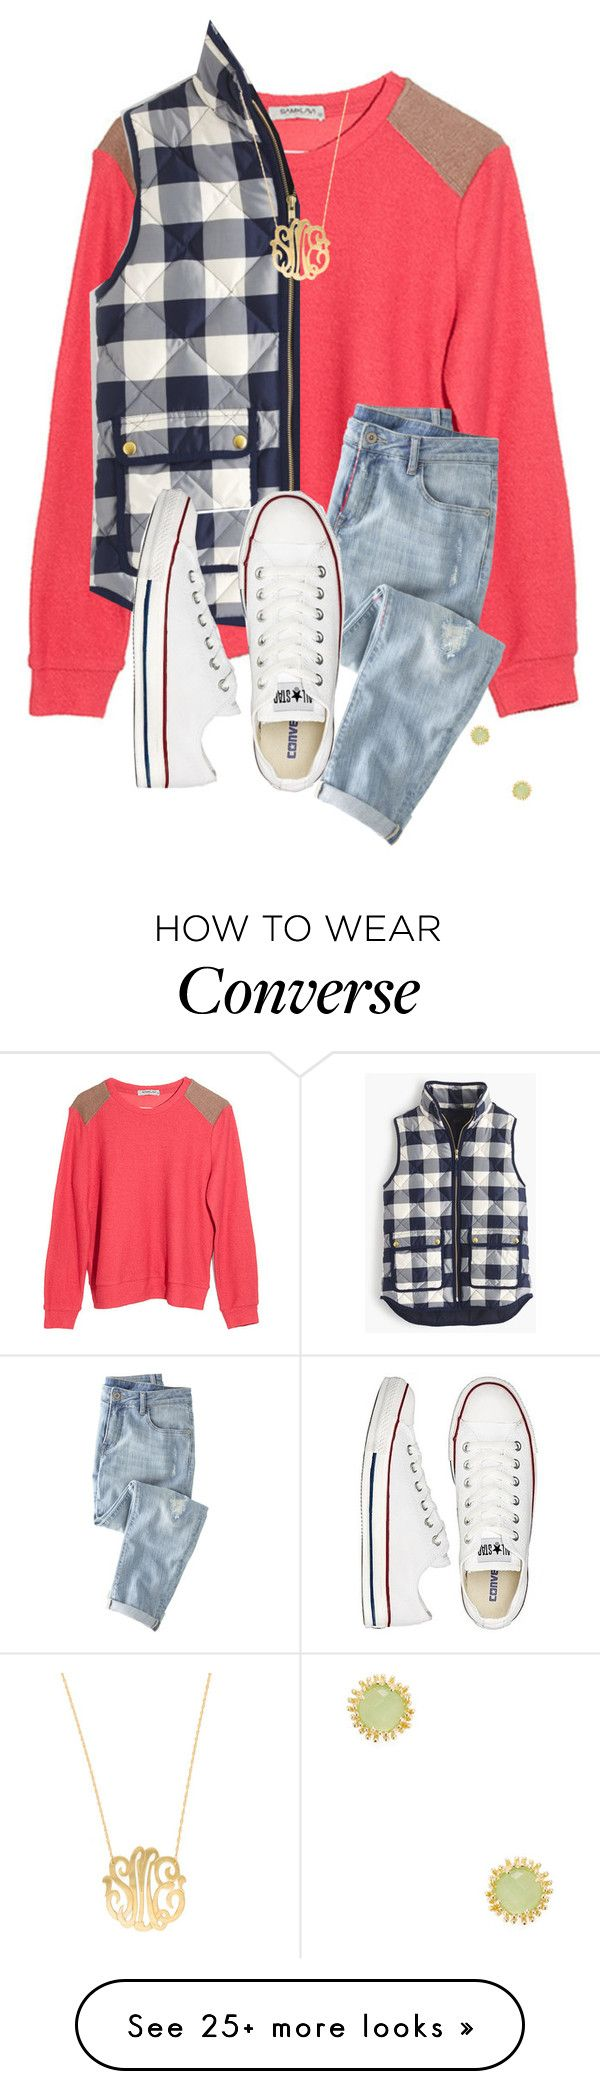 """Untitled #627"" by hayley-tennis on Polyvore featuring Sam&Lavi, J.Crew, Wrap, Converse, Moon and Lola and Kendra Scott"